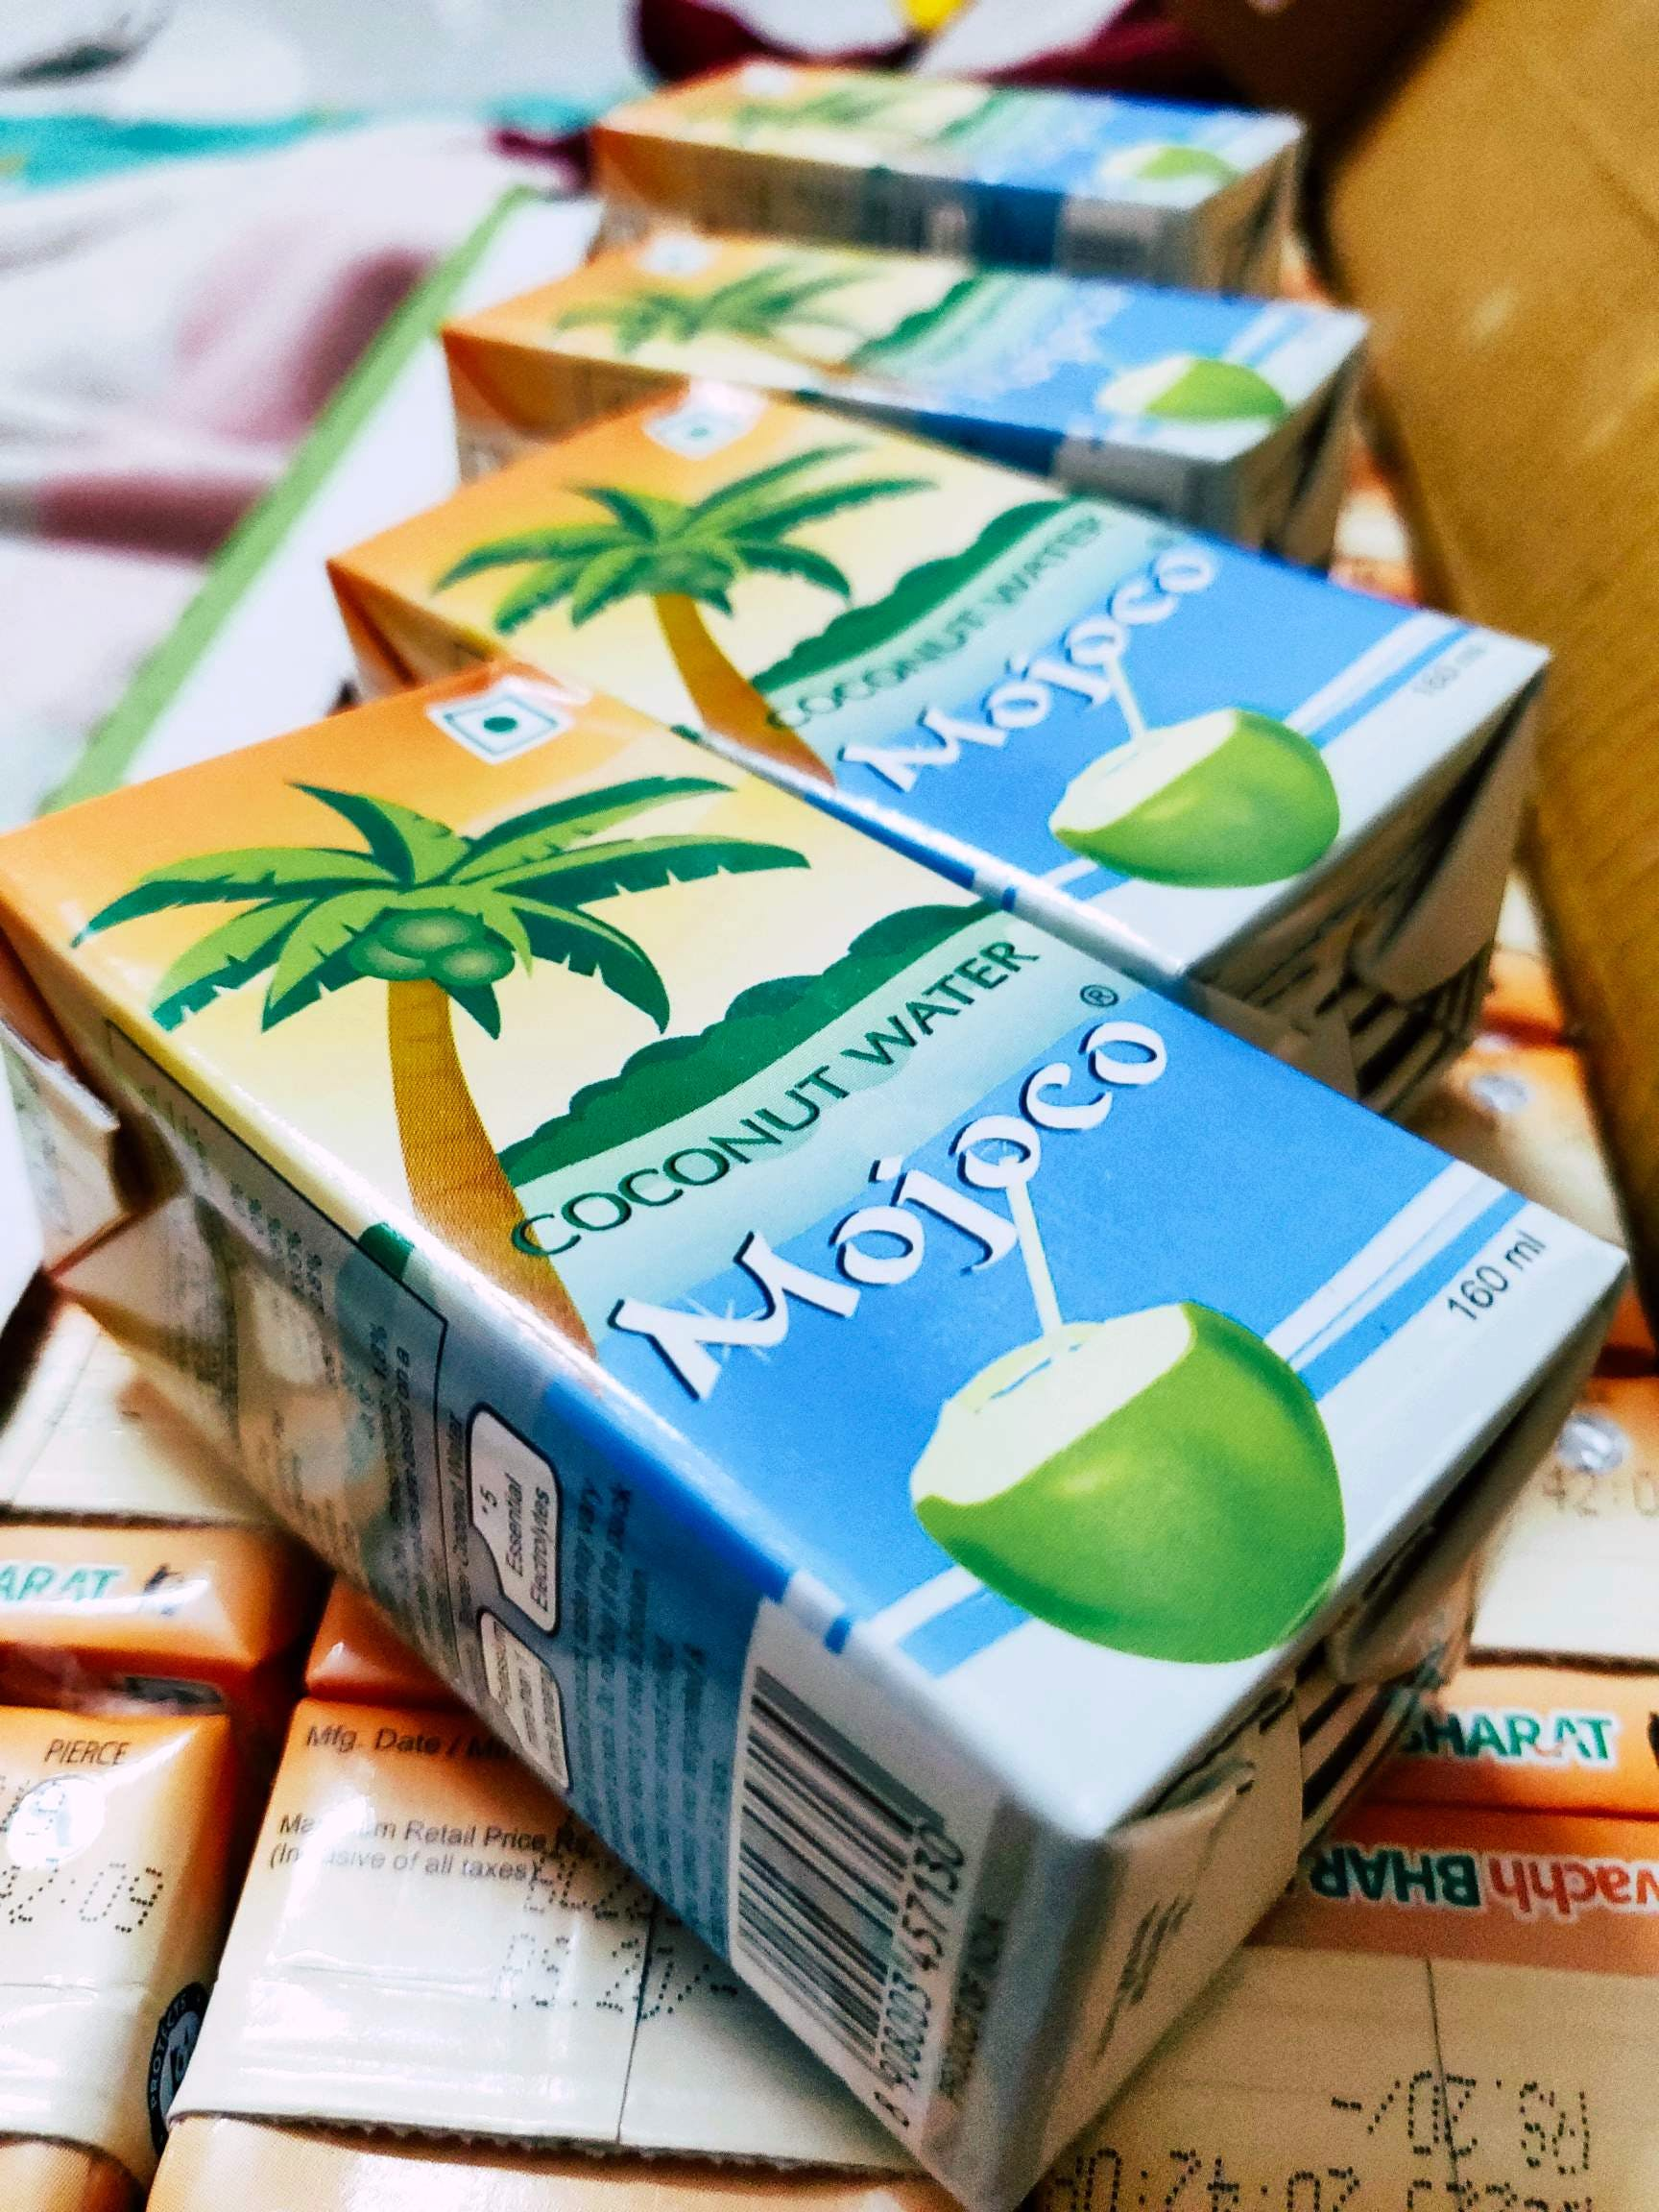 Stay Hydrated With This Tetra Pak Tender Coconut Water